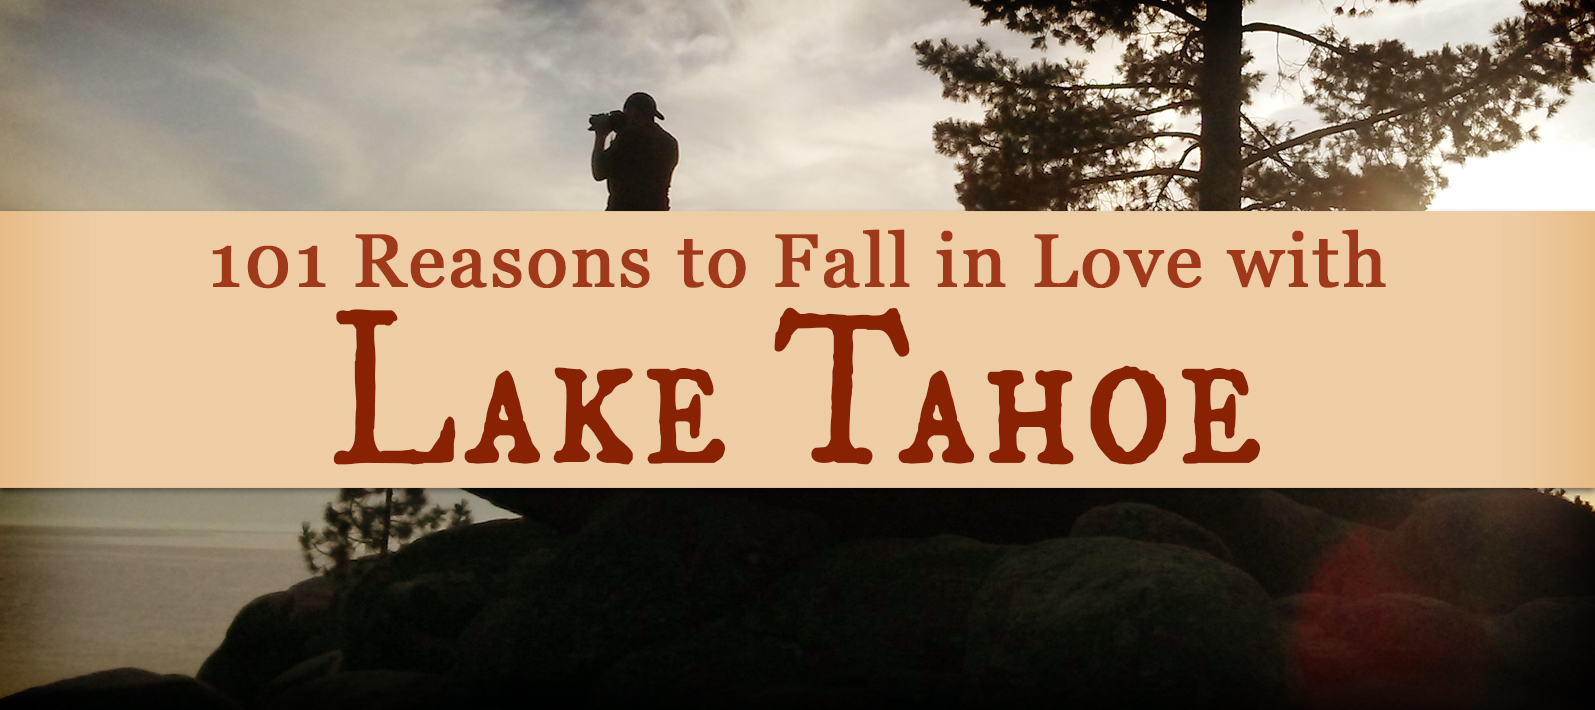 """101 Reasons to Fall in Love with Lake Tahoe: Had a *glorious* week at Lake Tahoe. Such breathtaking scenery! And when I say """"breathtaking,"""" I do so with all the words my thesaurus can list in mind: spectacular, awe-inspiring, magnificent, sensational, wondrous, and all the rest."""